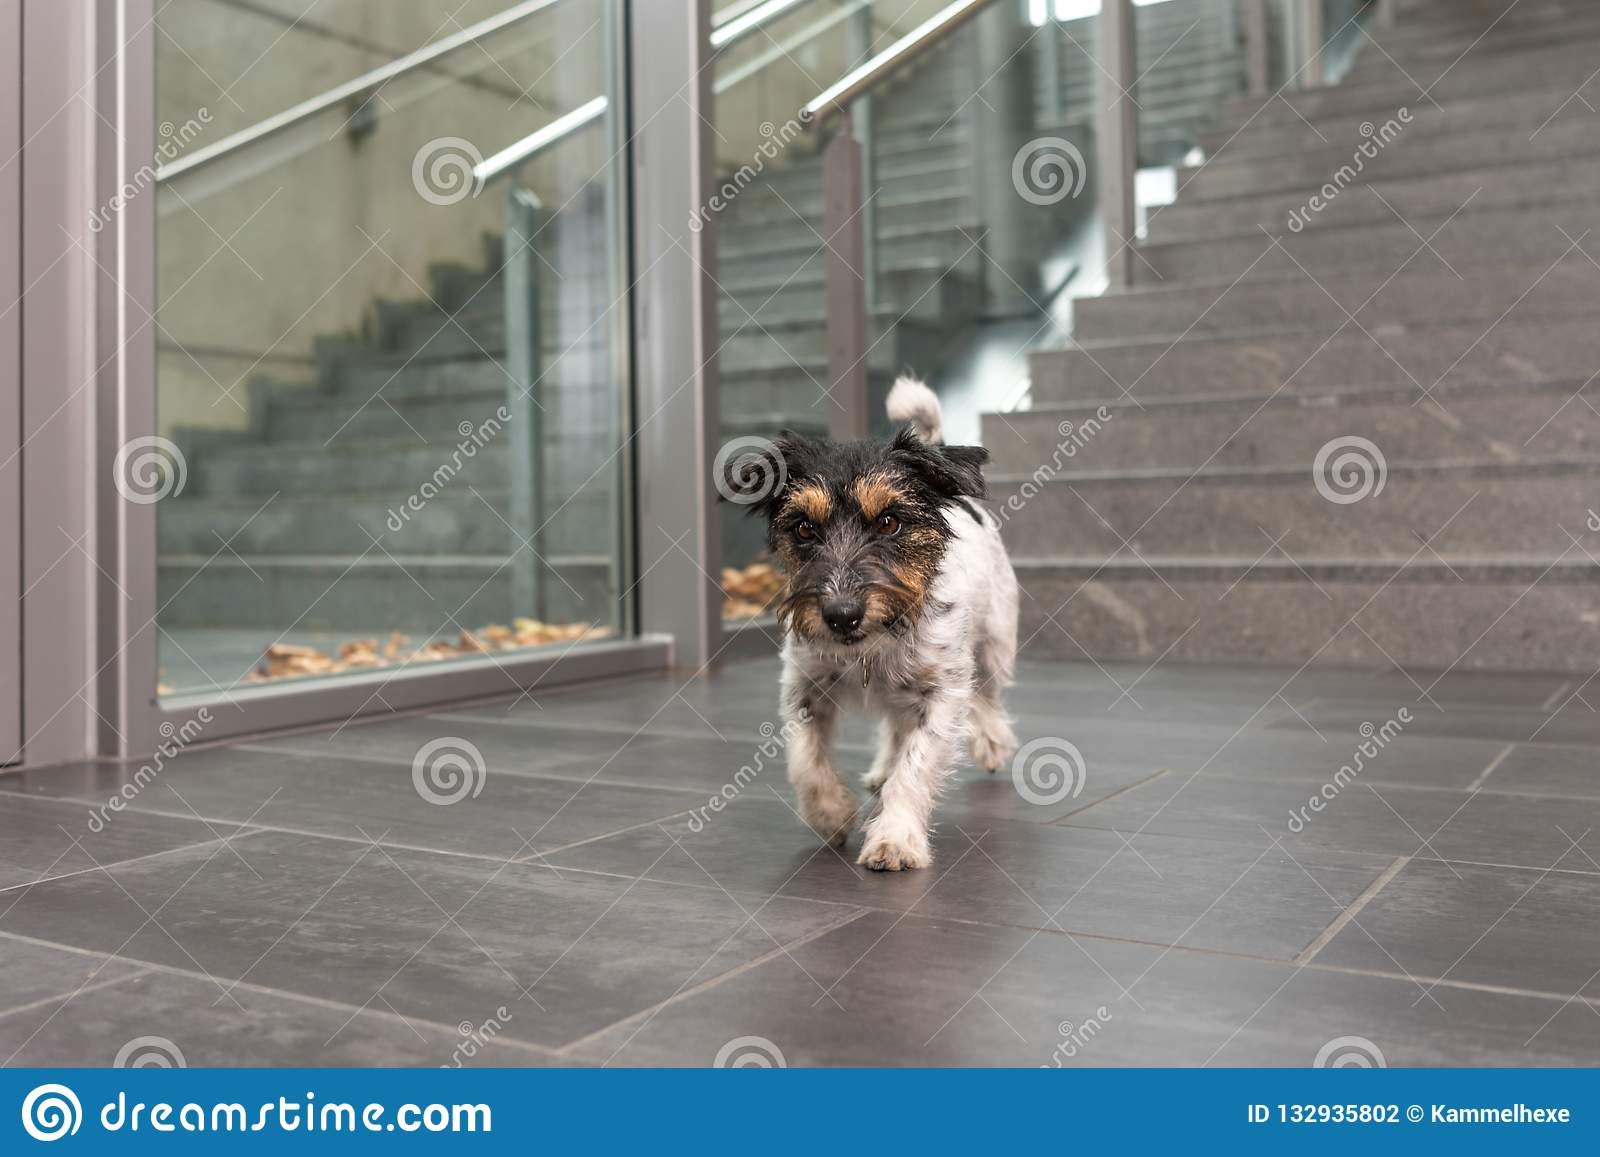 Jack Russell dog ist running in a public building